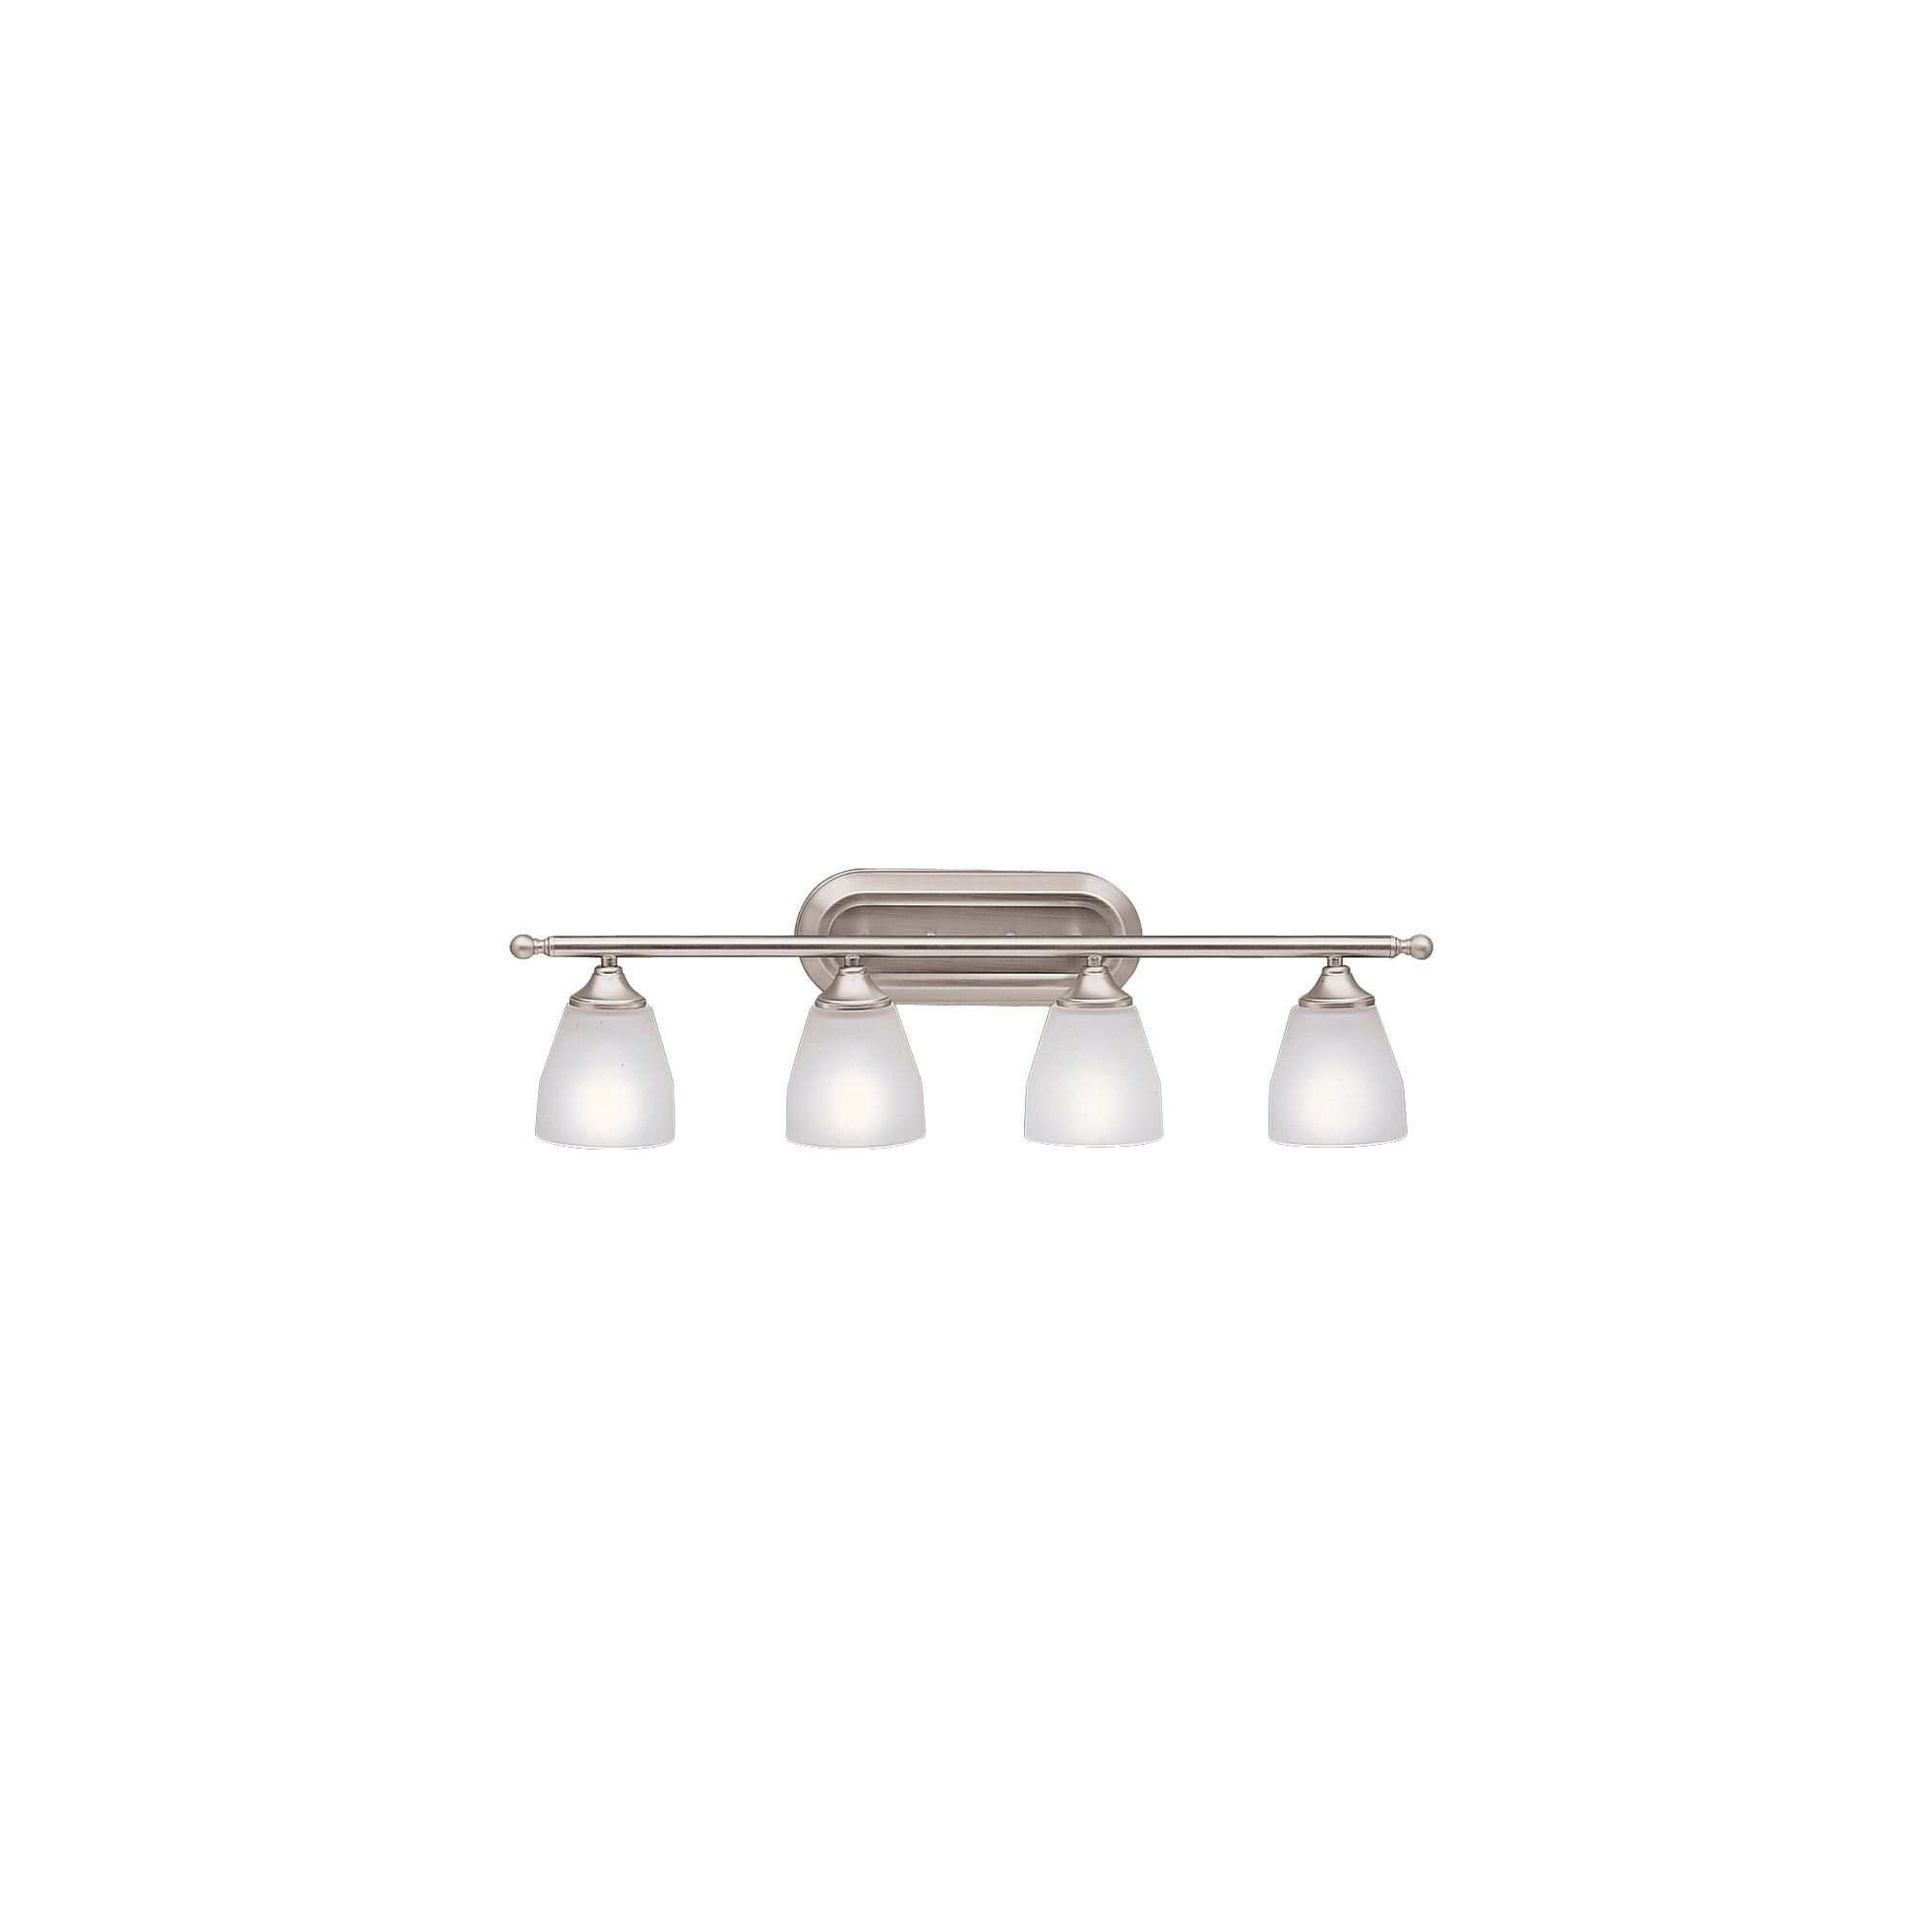 Photo of Kichler 5449 Ansonia 4 Light 31″ Wide Vanity Light Bathroom Fixture with Etched Glass Shades – Brushed Nickel